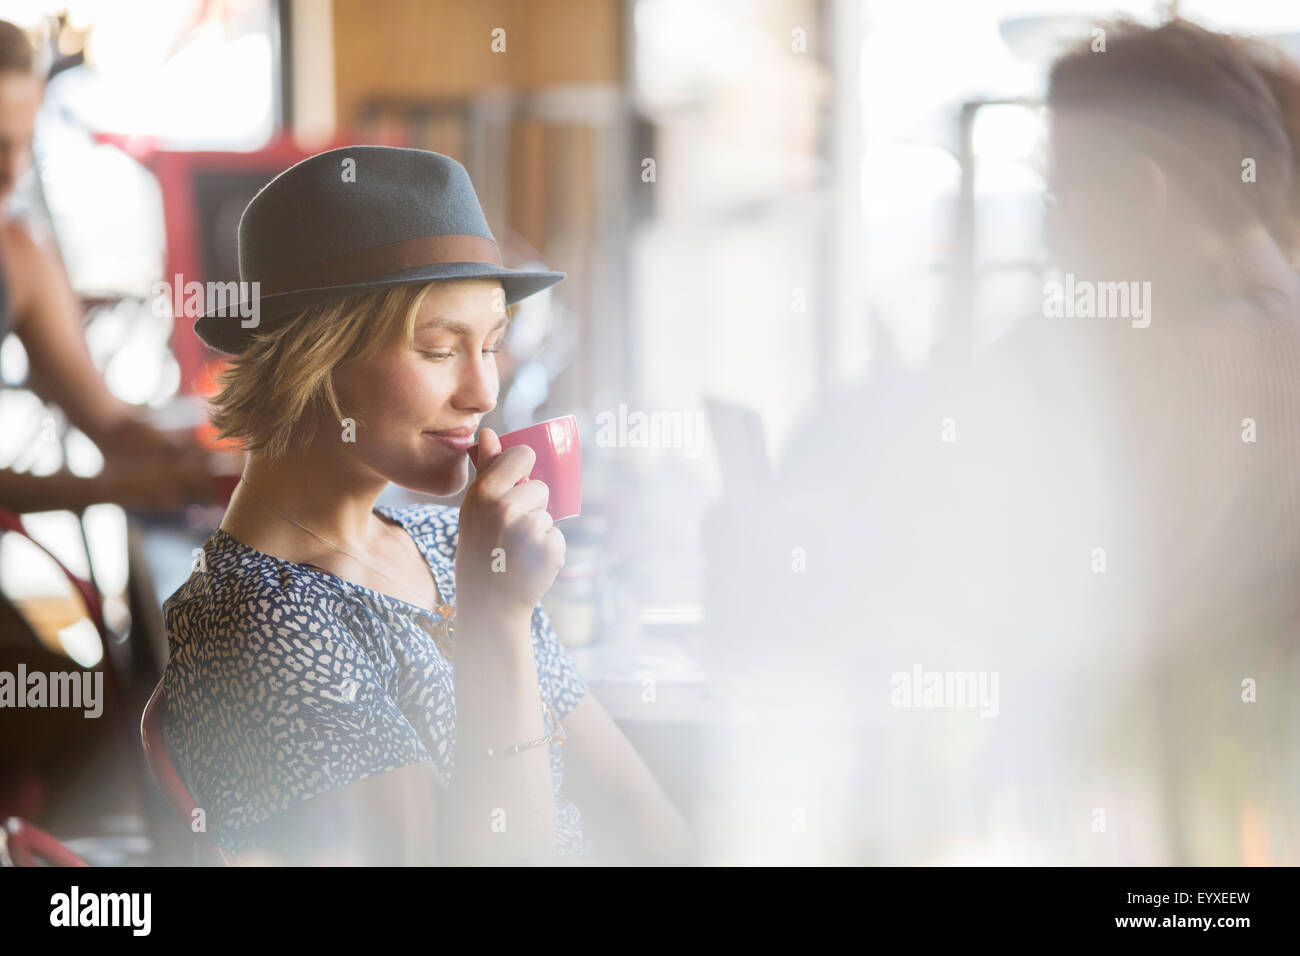 Woman in hat drinking coffee in cafe - Stock Image